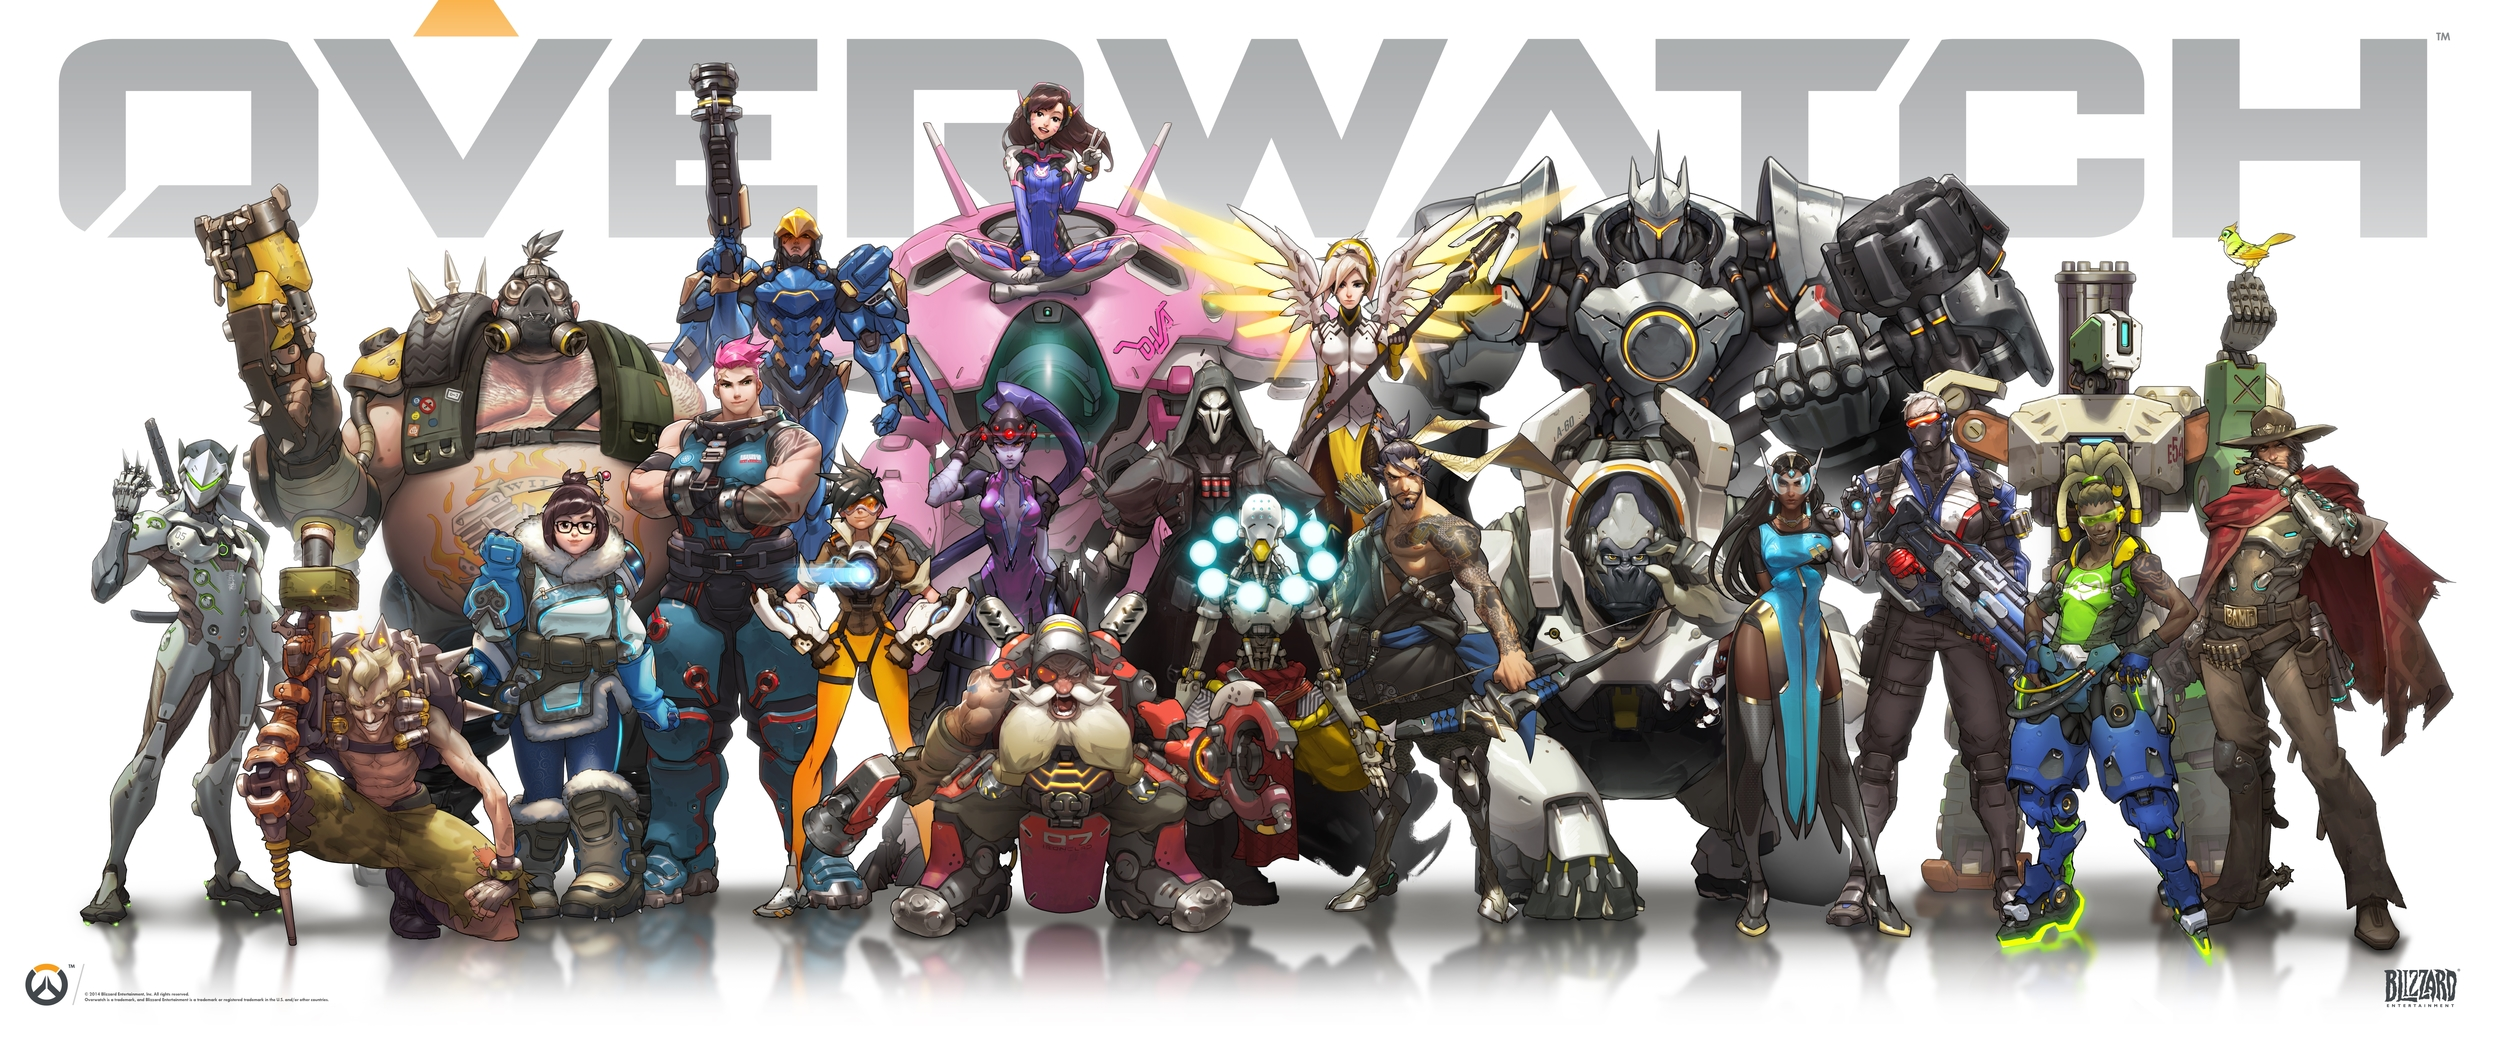 Heroes Lineup for Overwatch, as of June 2016